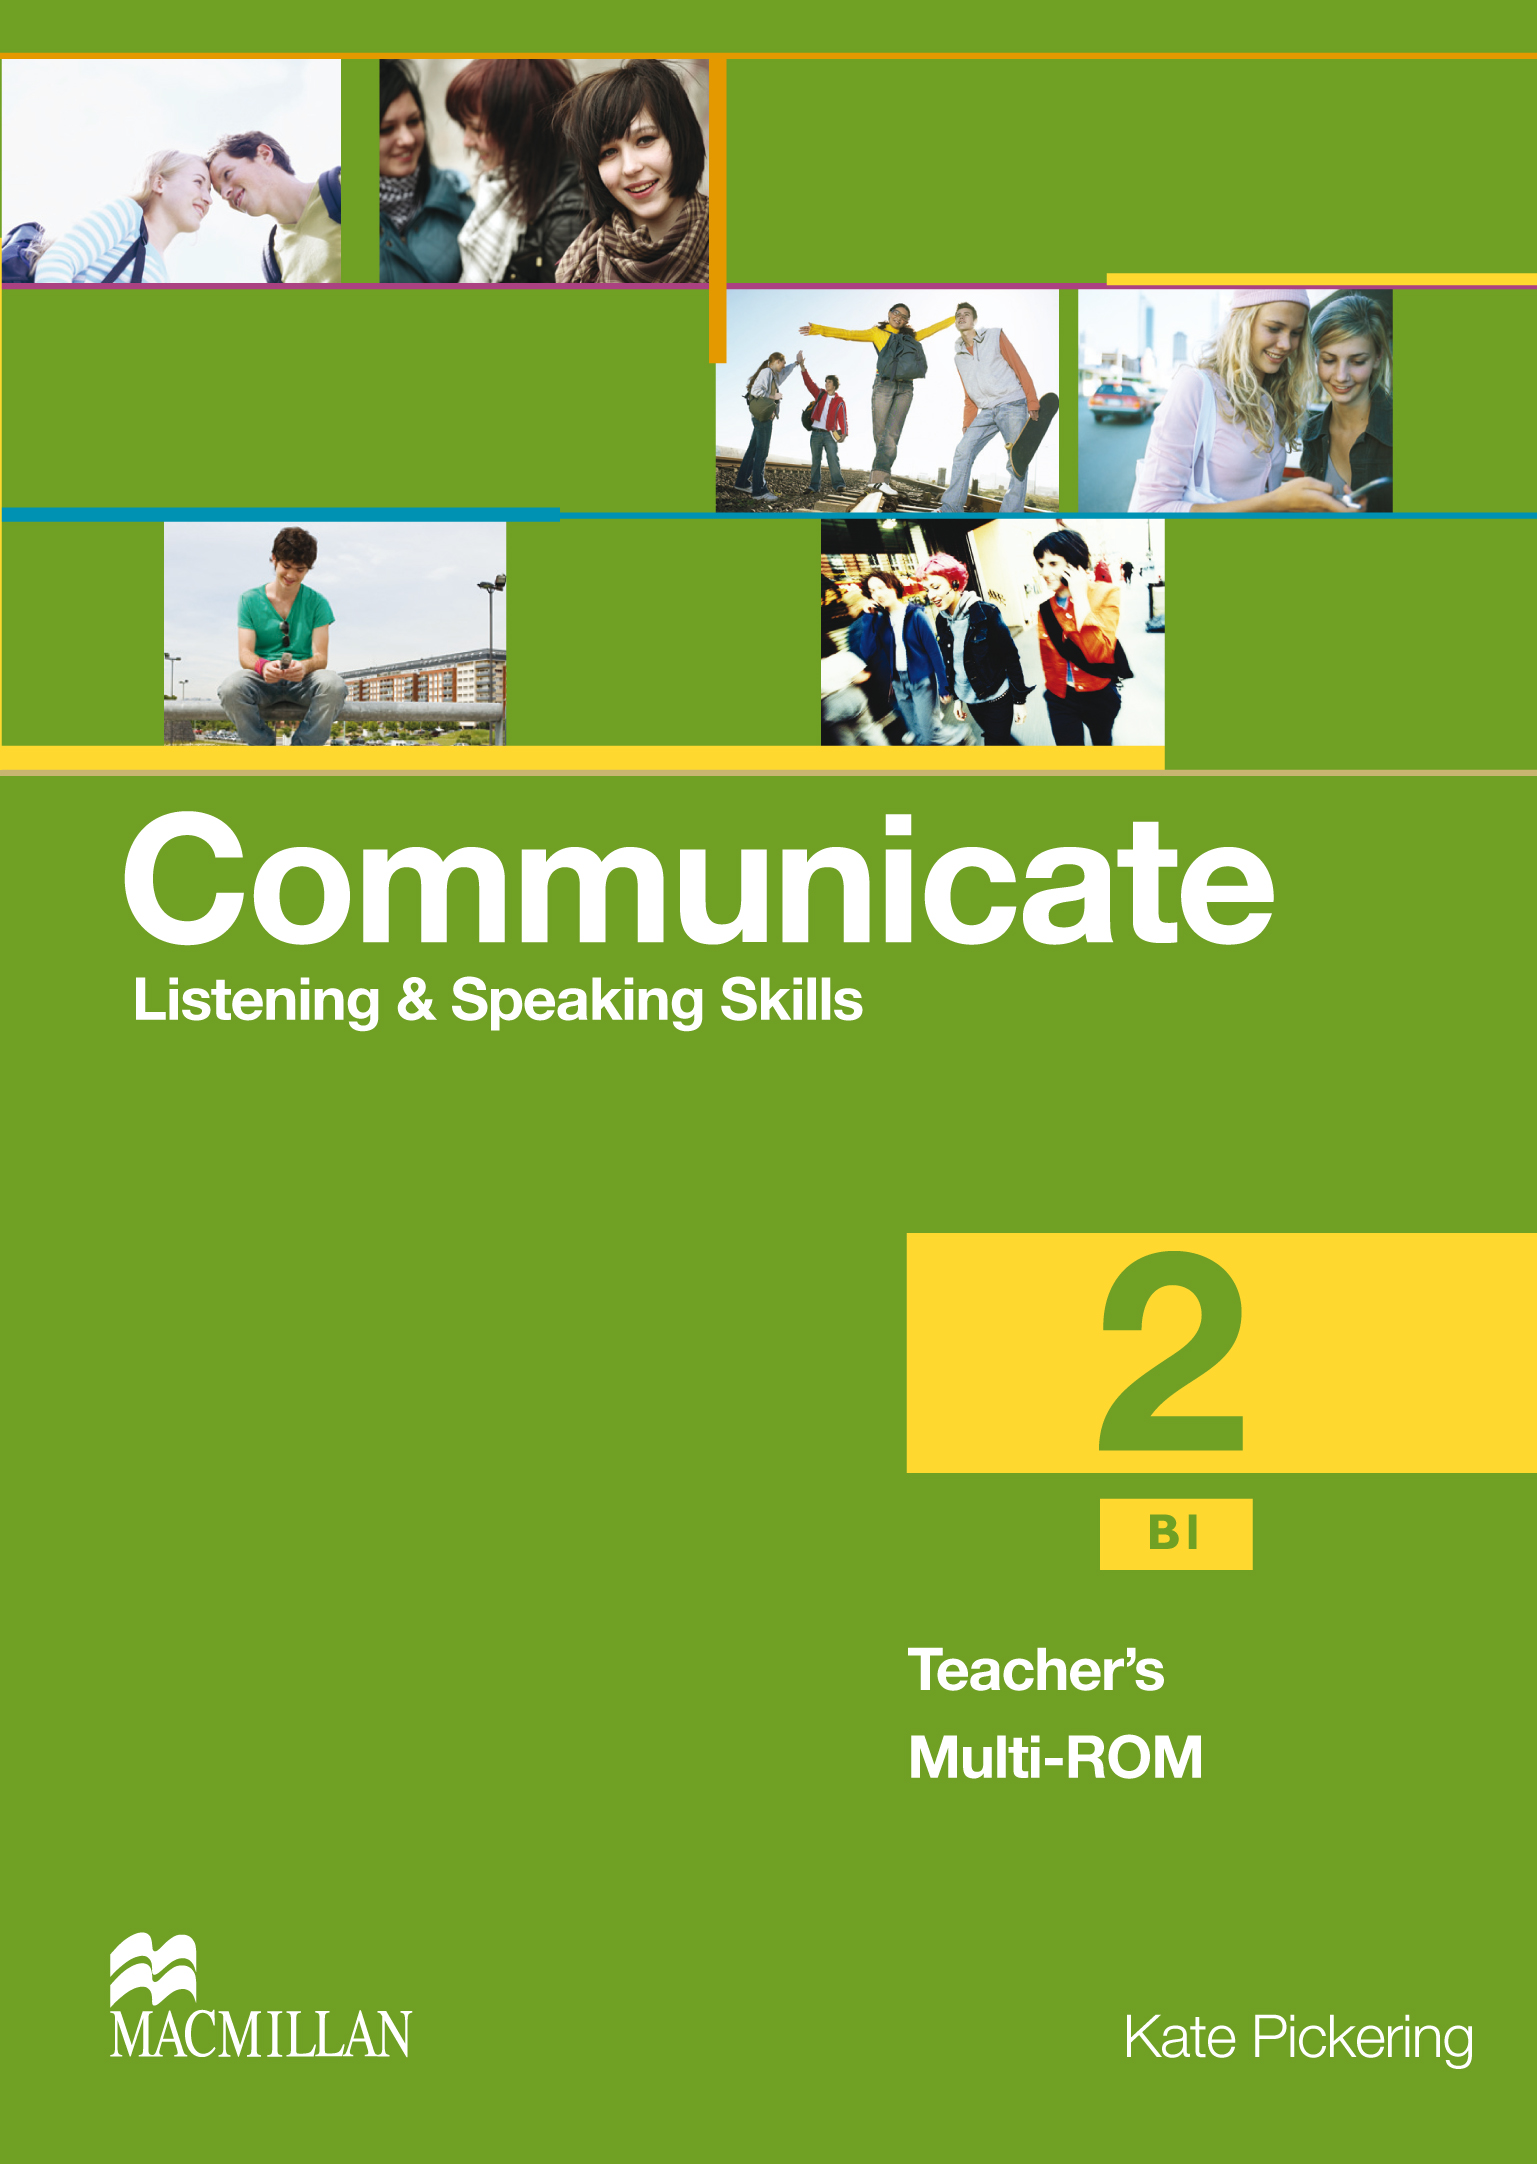 Communicate Teacher